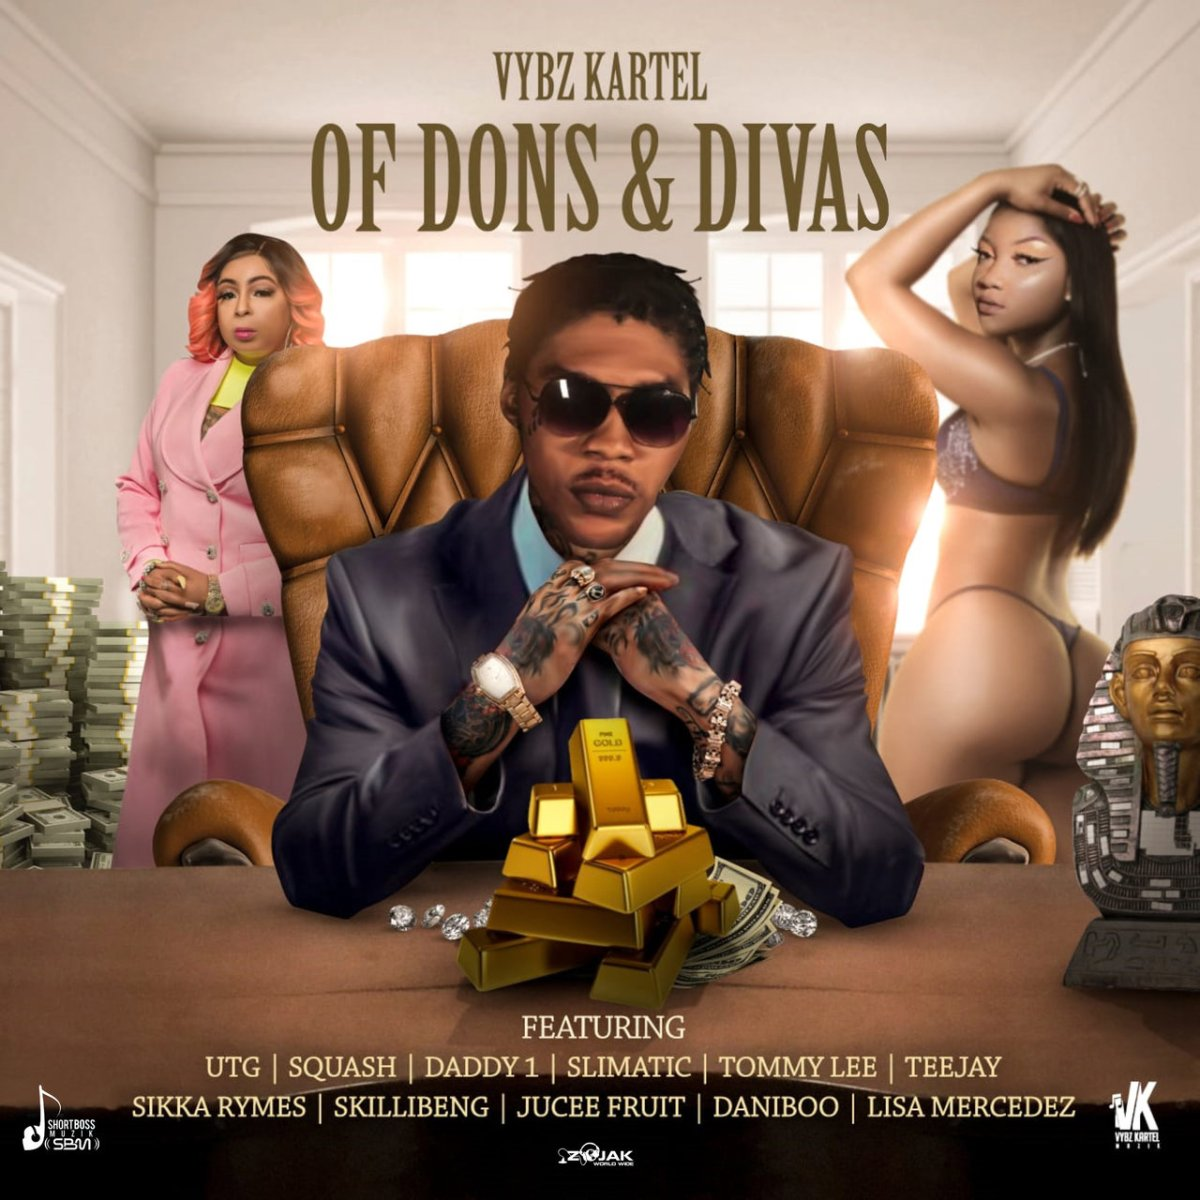 Vybz Kartel - Of Dons And Divas (Cover)